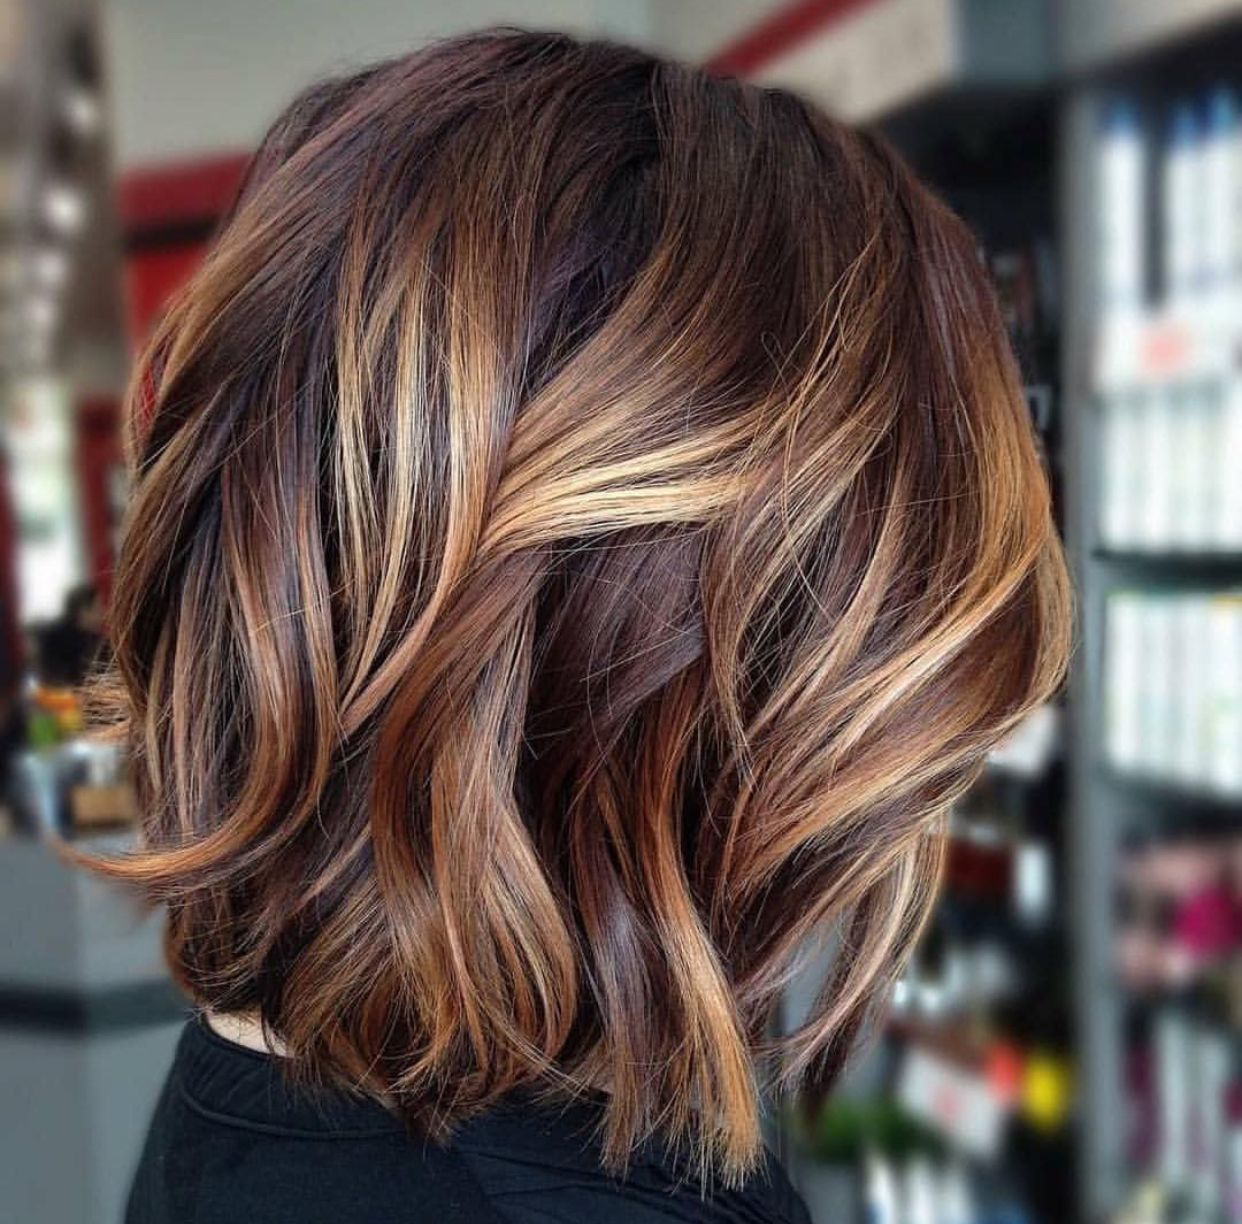 Love The Style Length And Color Hair Styles Brown Blonde